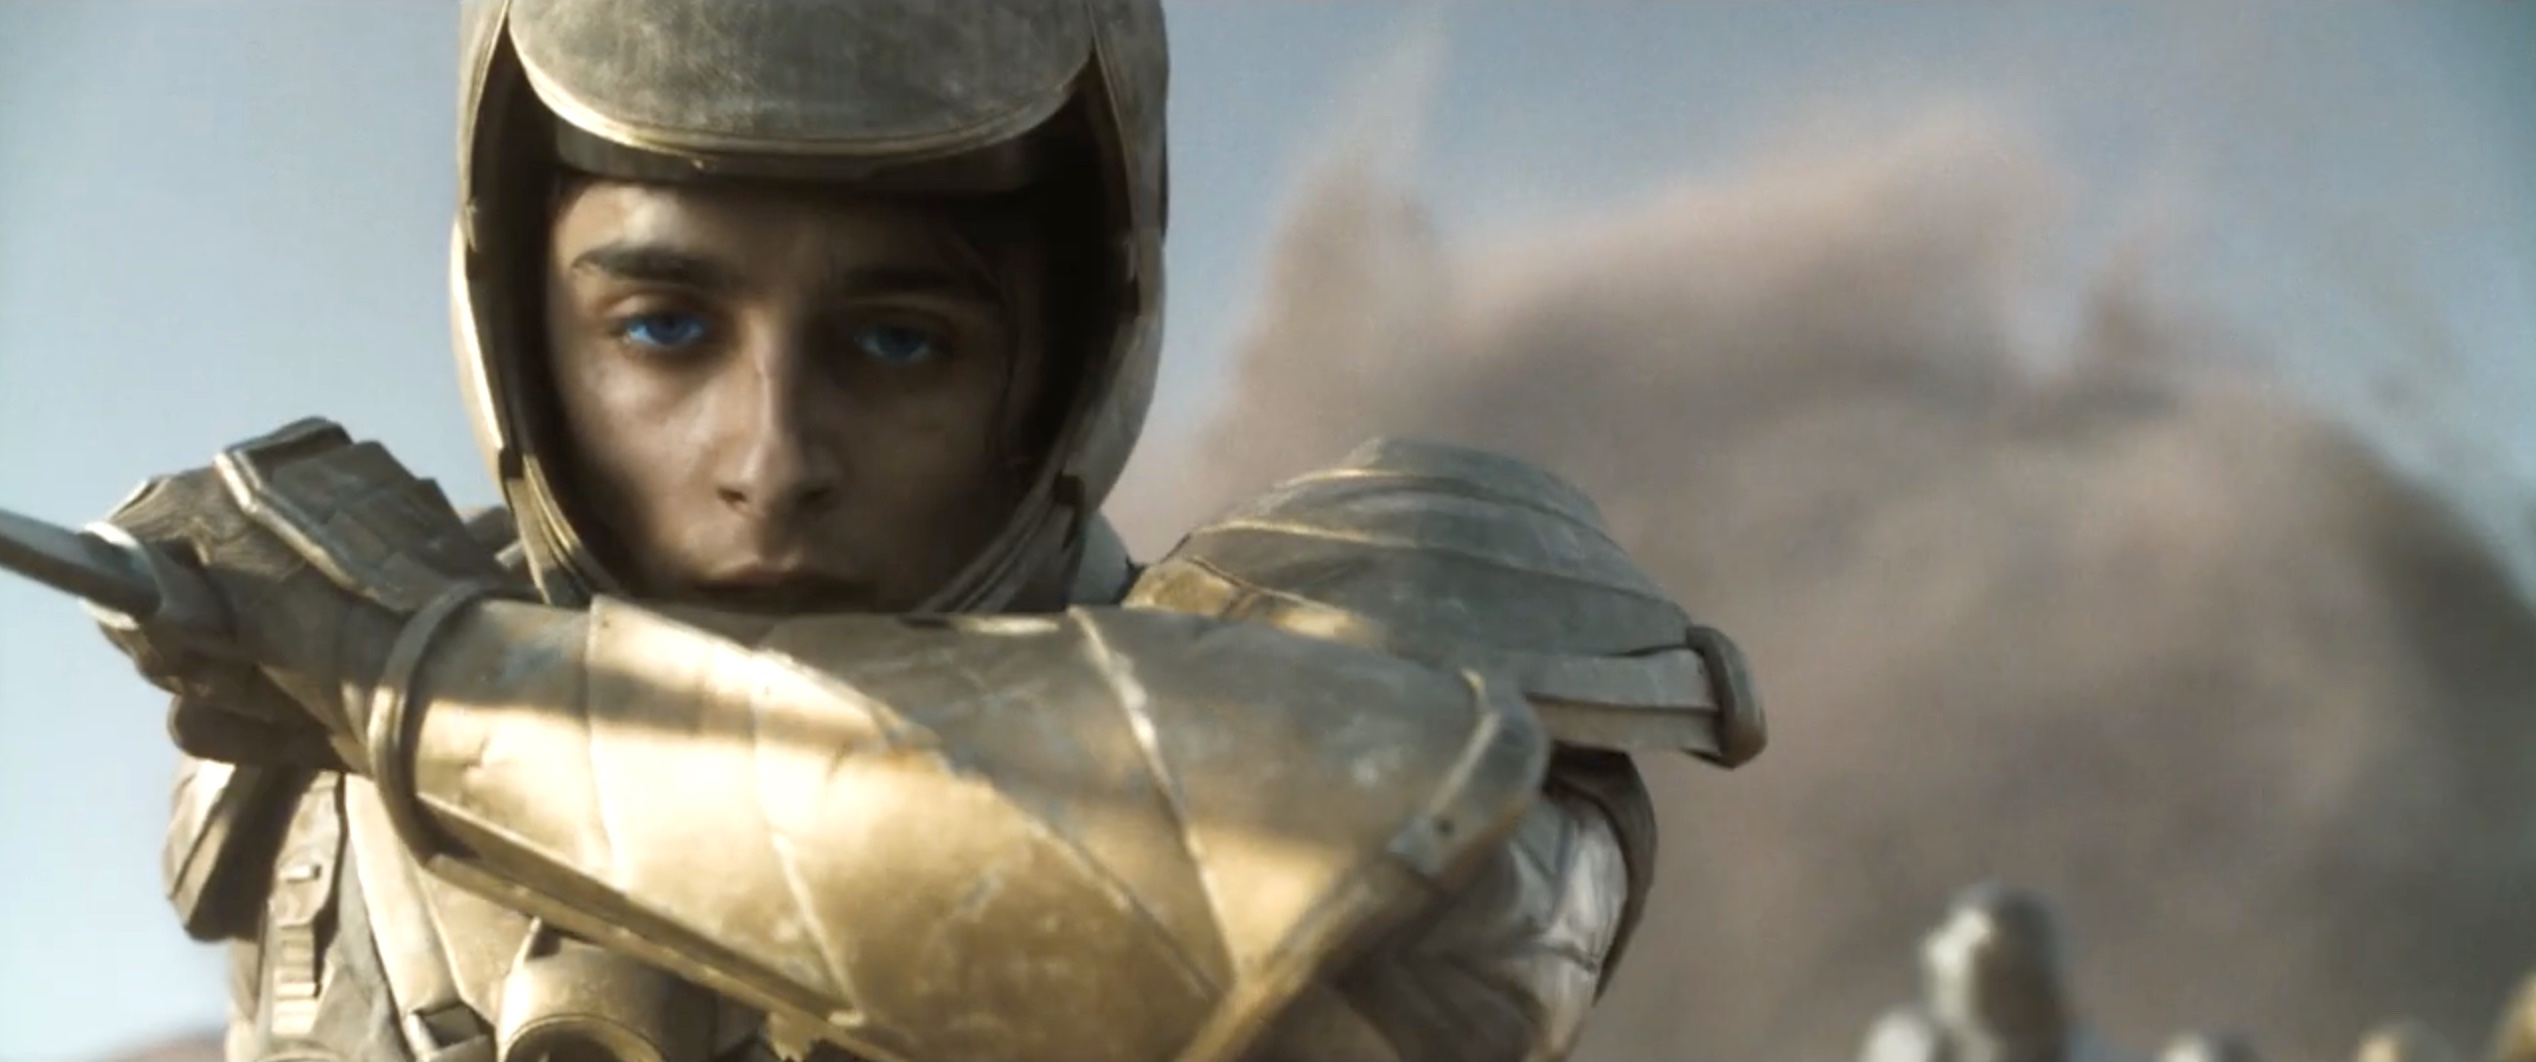 a close-up of Paul (Timothee Chalamet) wearing gold armor in Dune